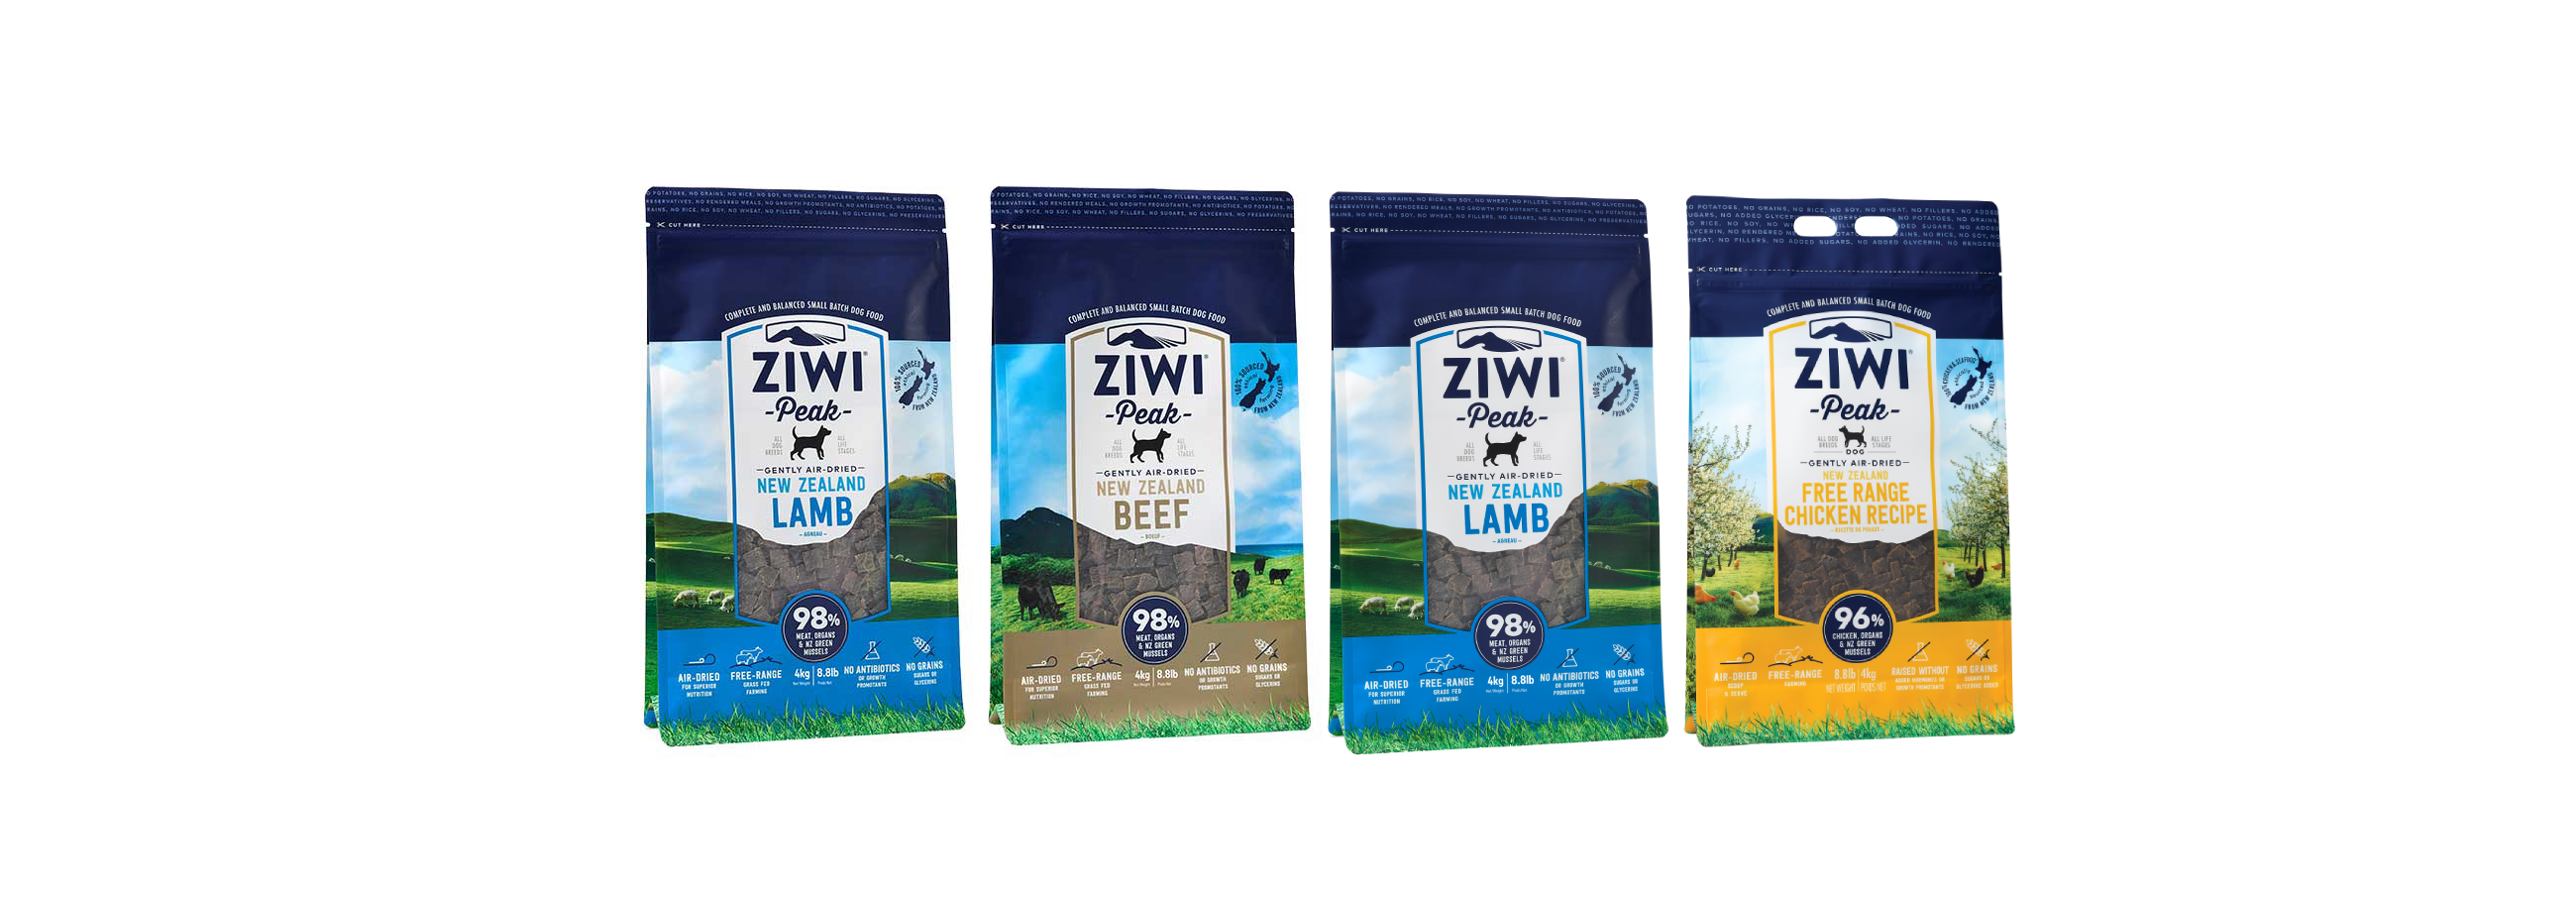 ZIWI Peak Air-Dried Beef or Air-Dried Lamb, Natural Dog Food, 4kg pouch